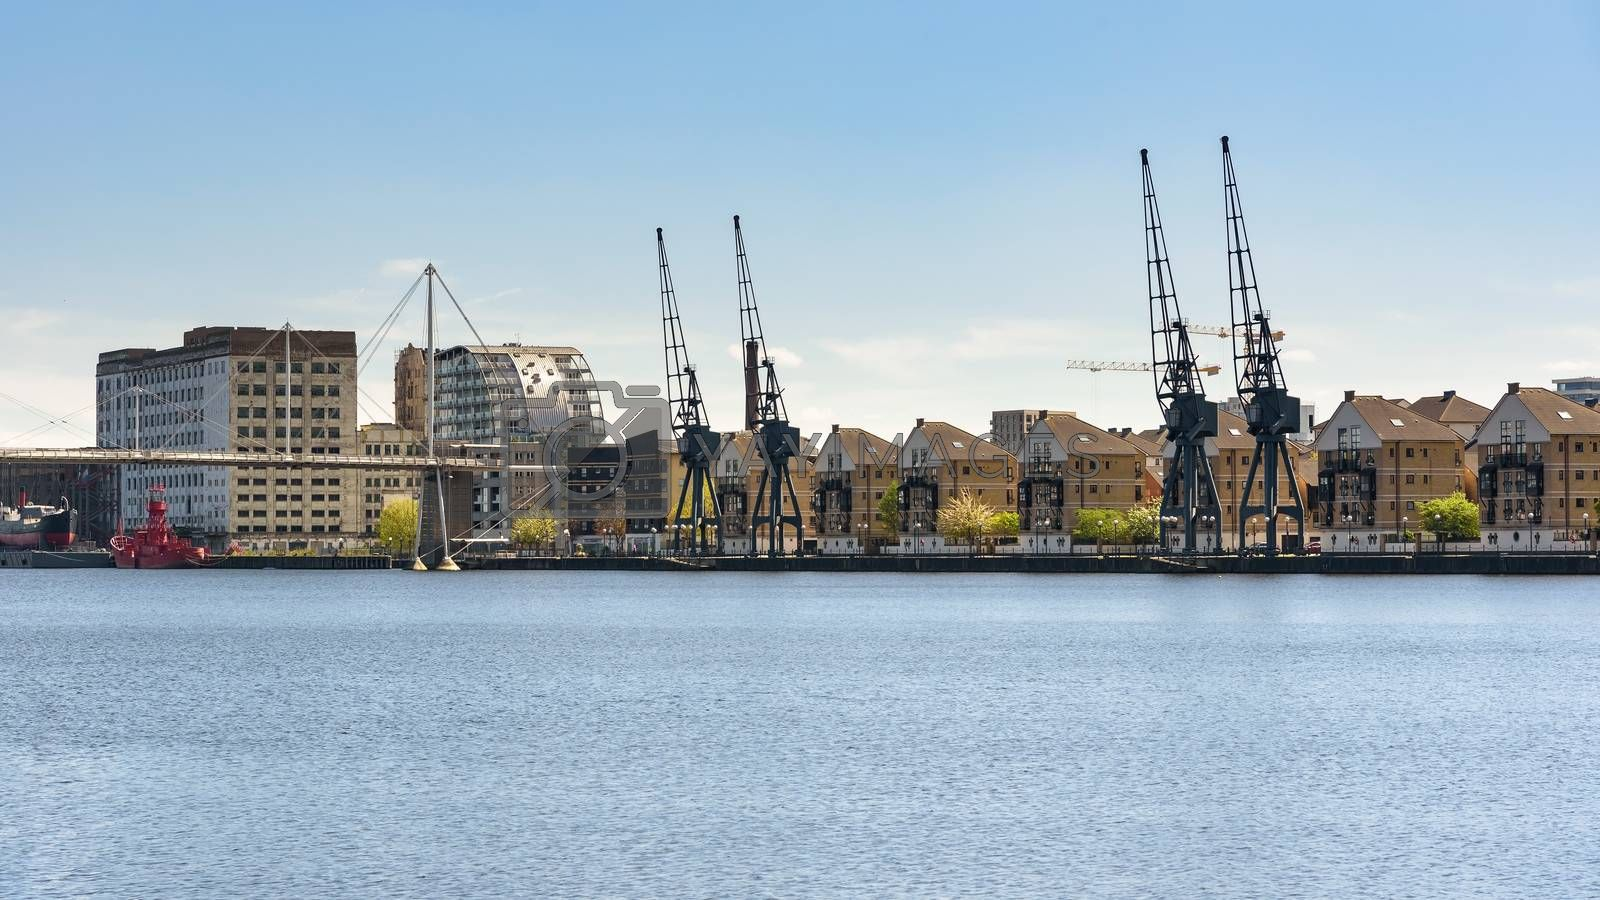 Royalty free image of Panoramic view of houses at Royal Victoria Dock in London by mkos83